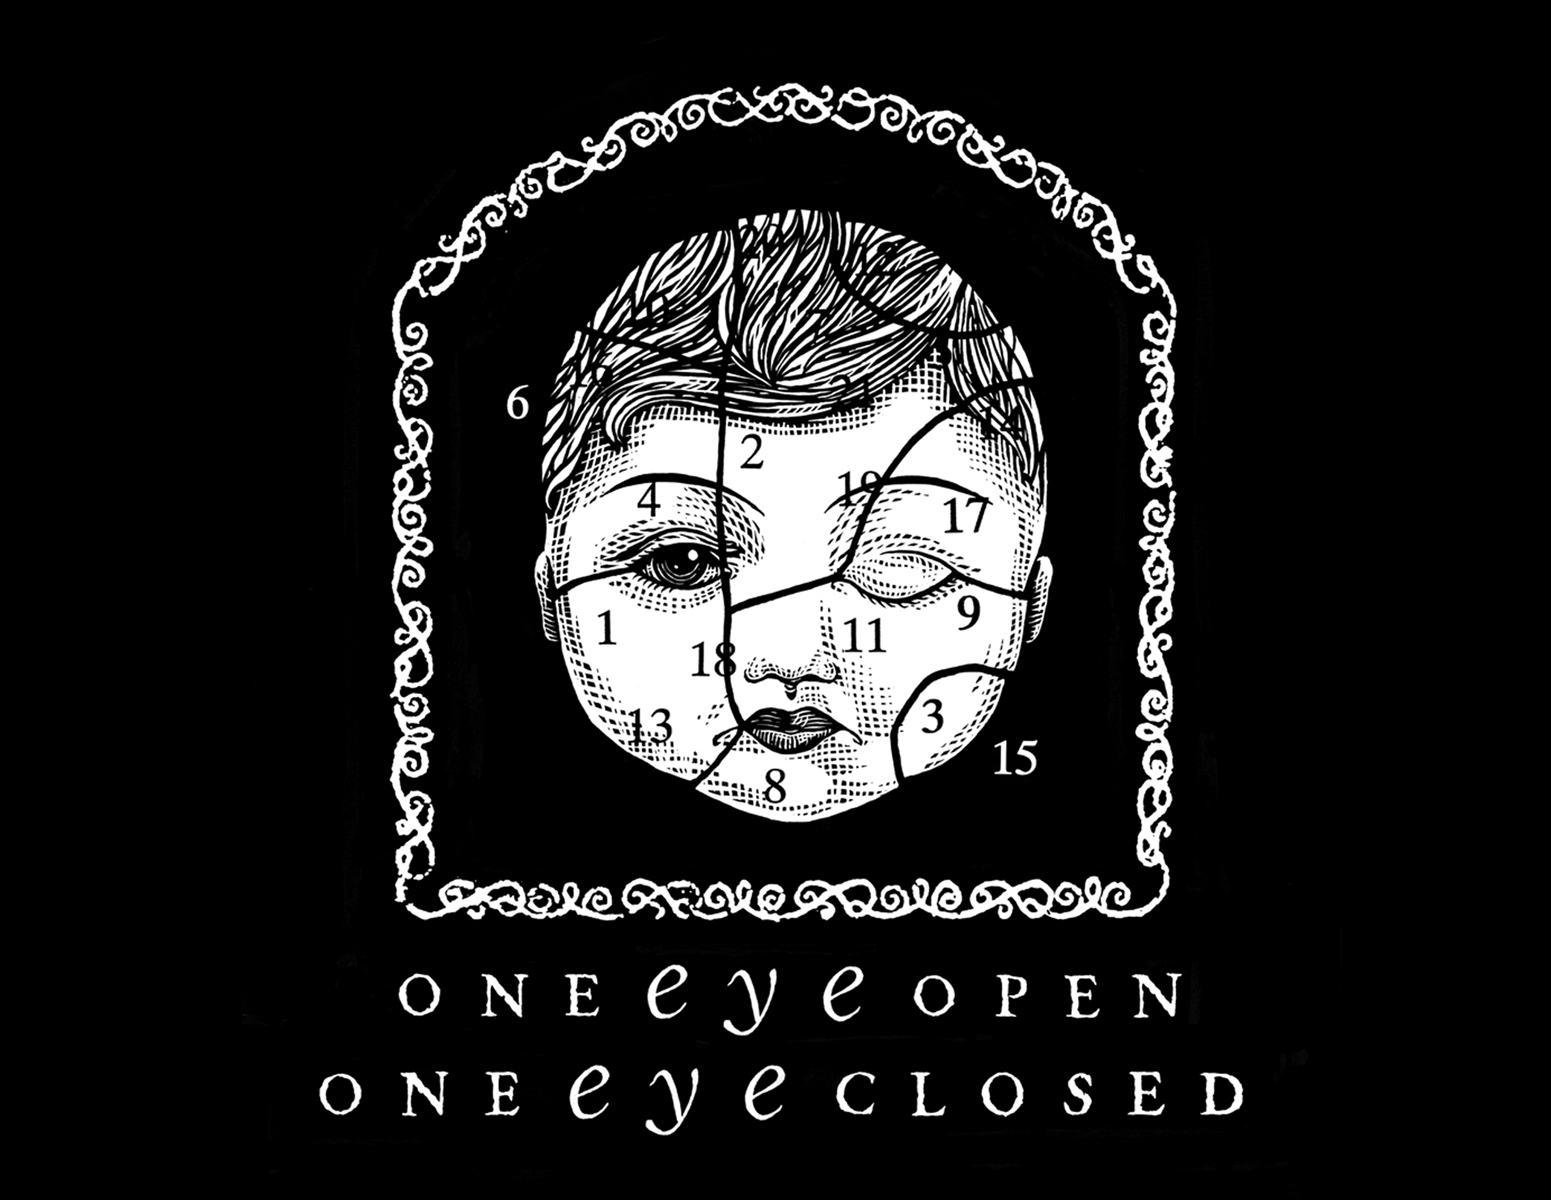 One Eye Open, One Eye Closed. Promotional poster and front of T shirt for alternative comic art show.  1994. Pen and Ink, Scratch board. Kalamazoo, MI.